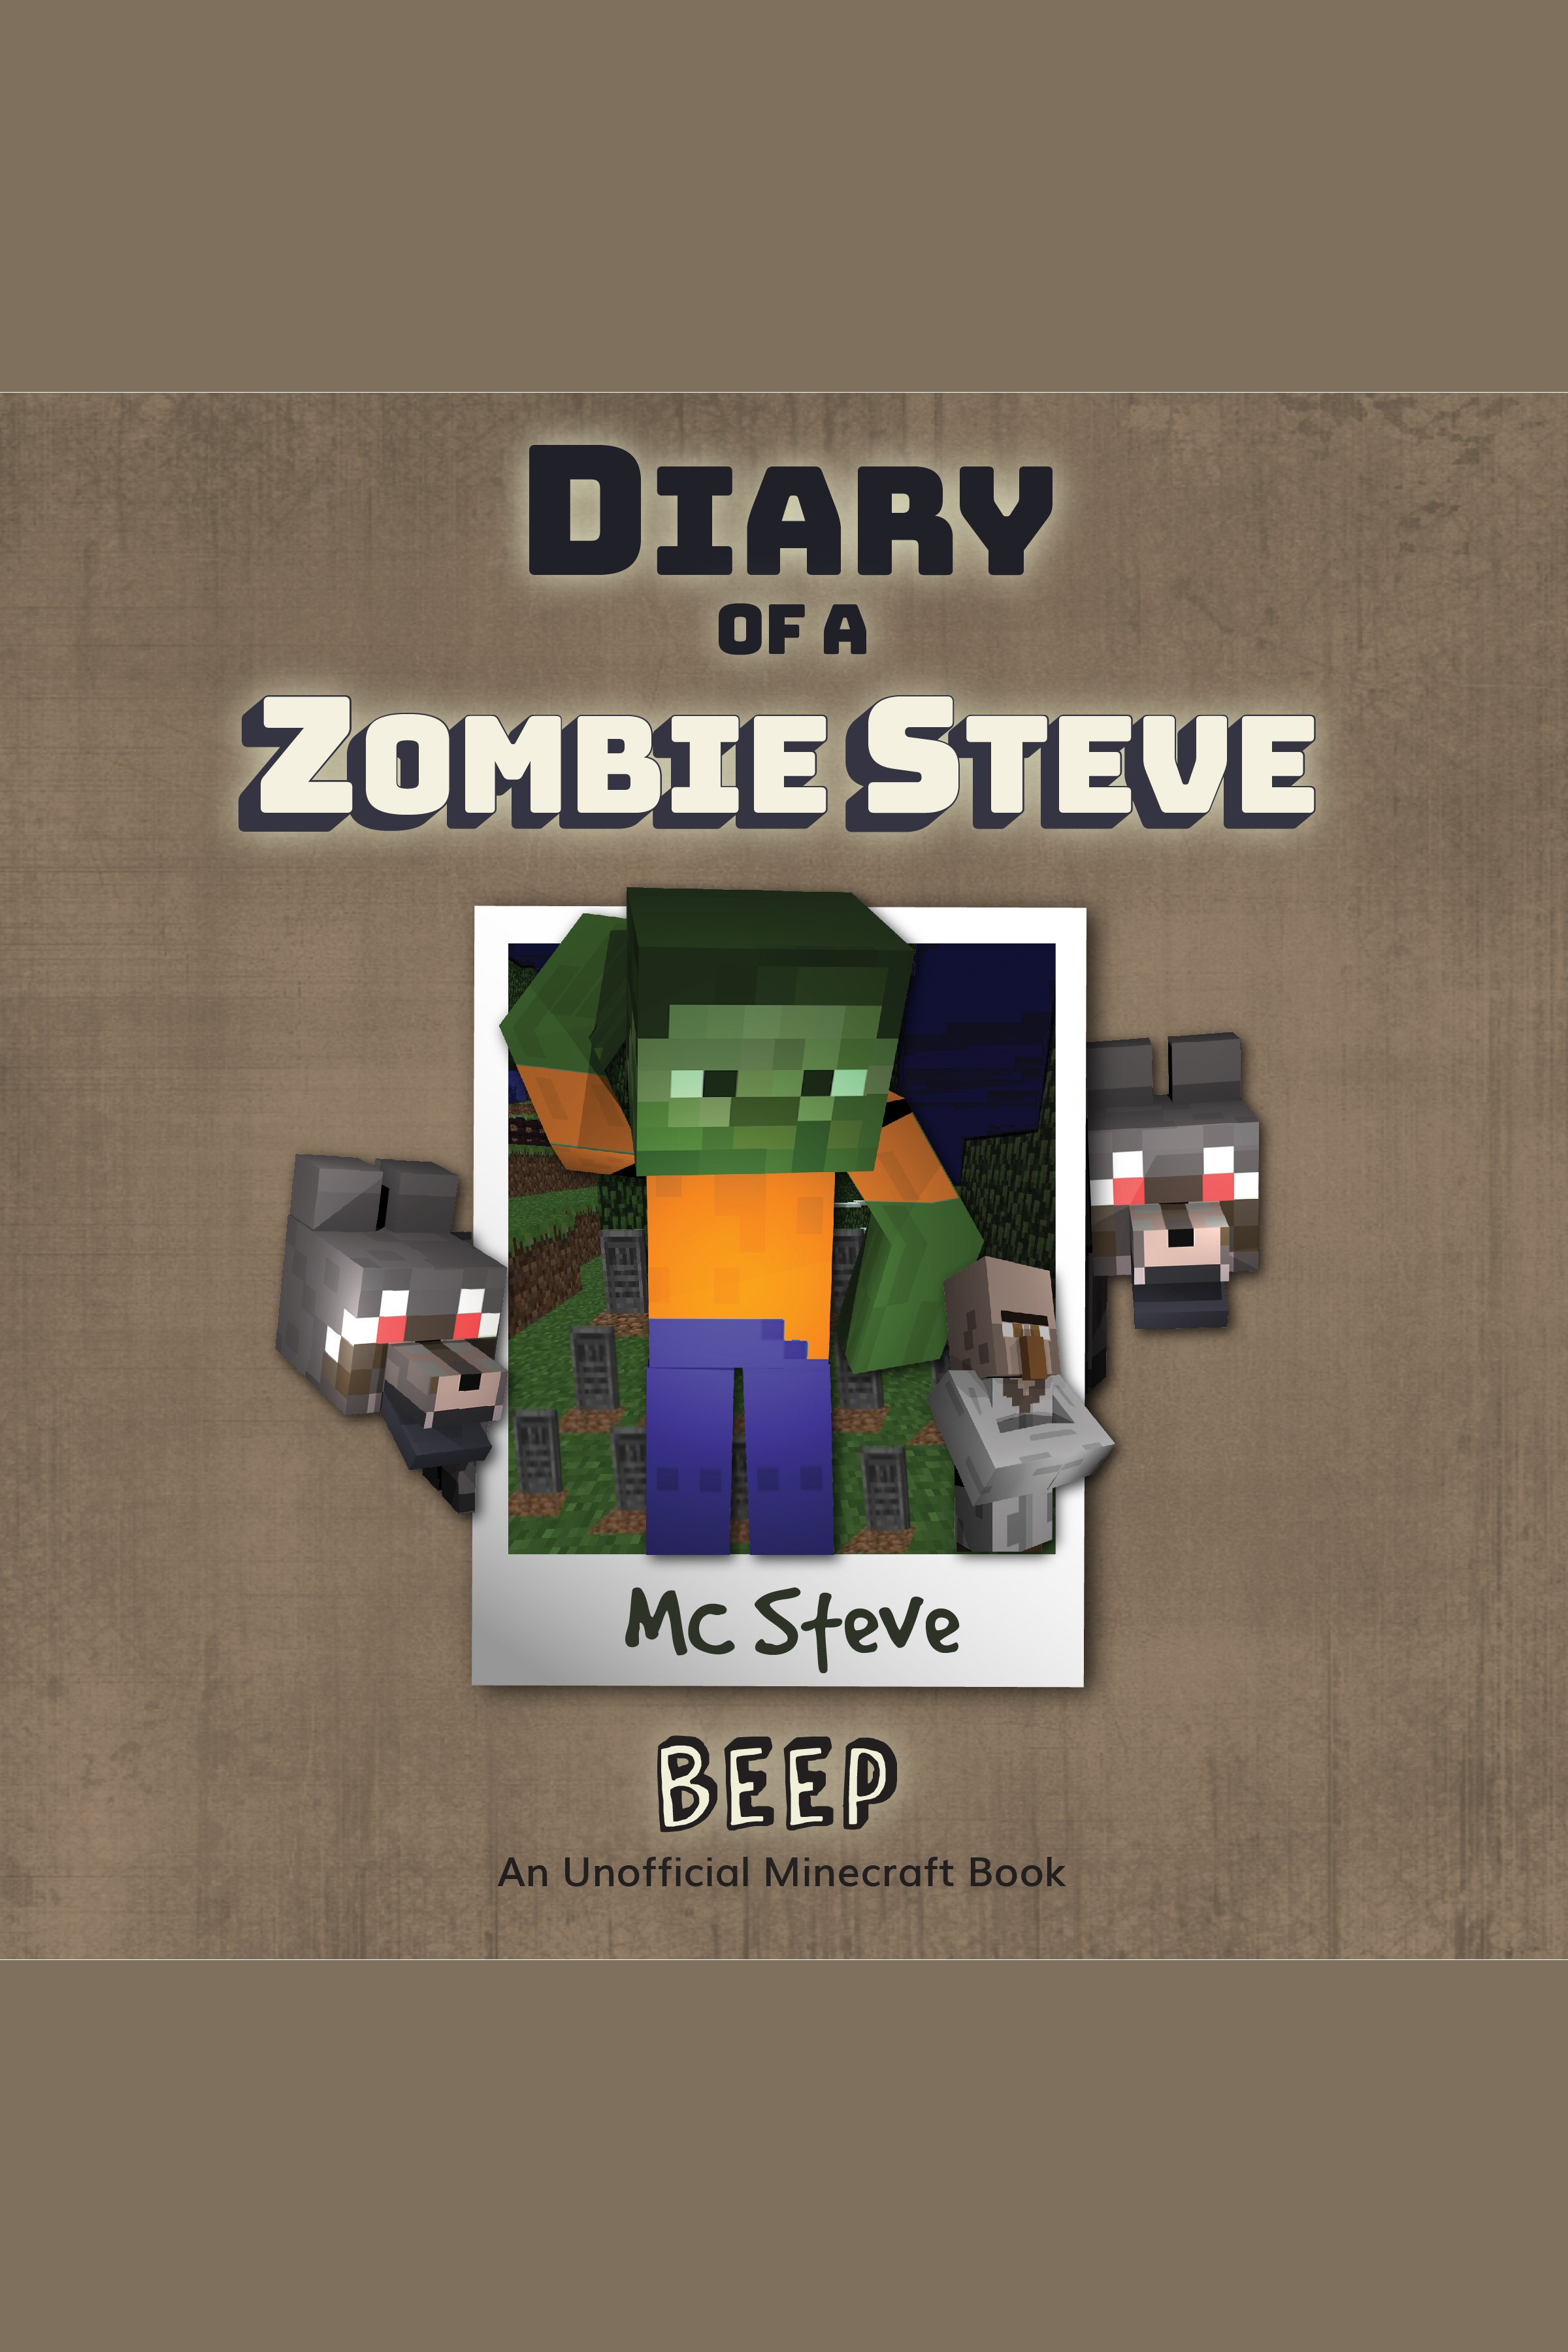 Diary Of A Zombie Steve Book 1: Beep (An Unofficial Minecraft Diary Book)